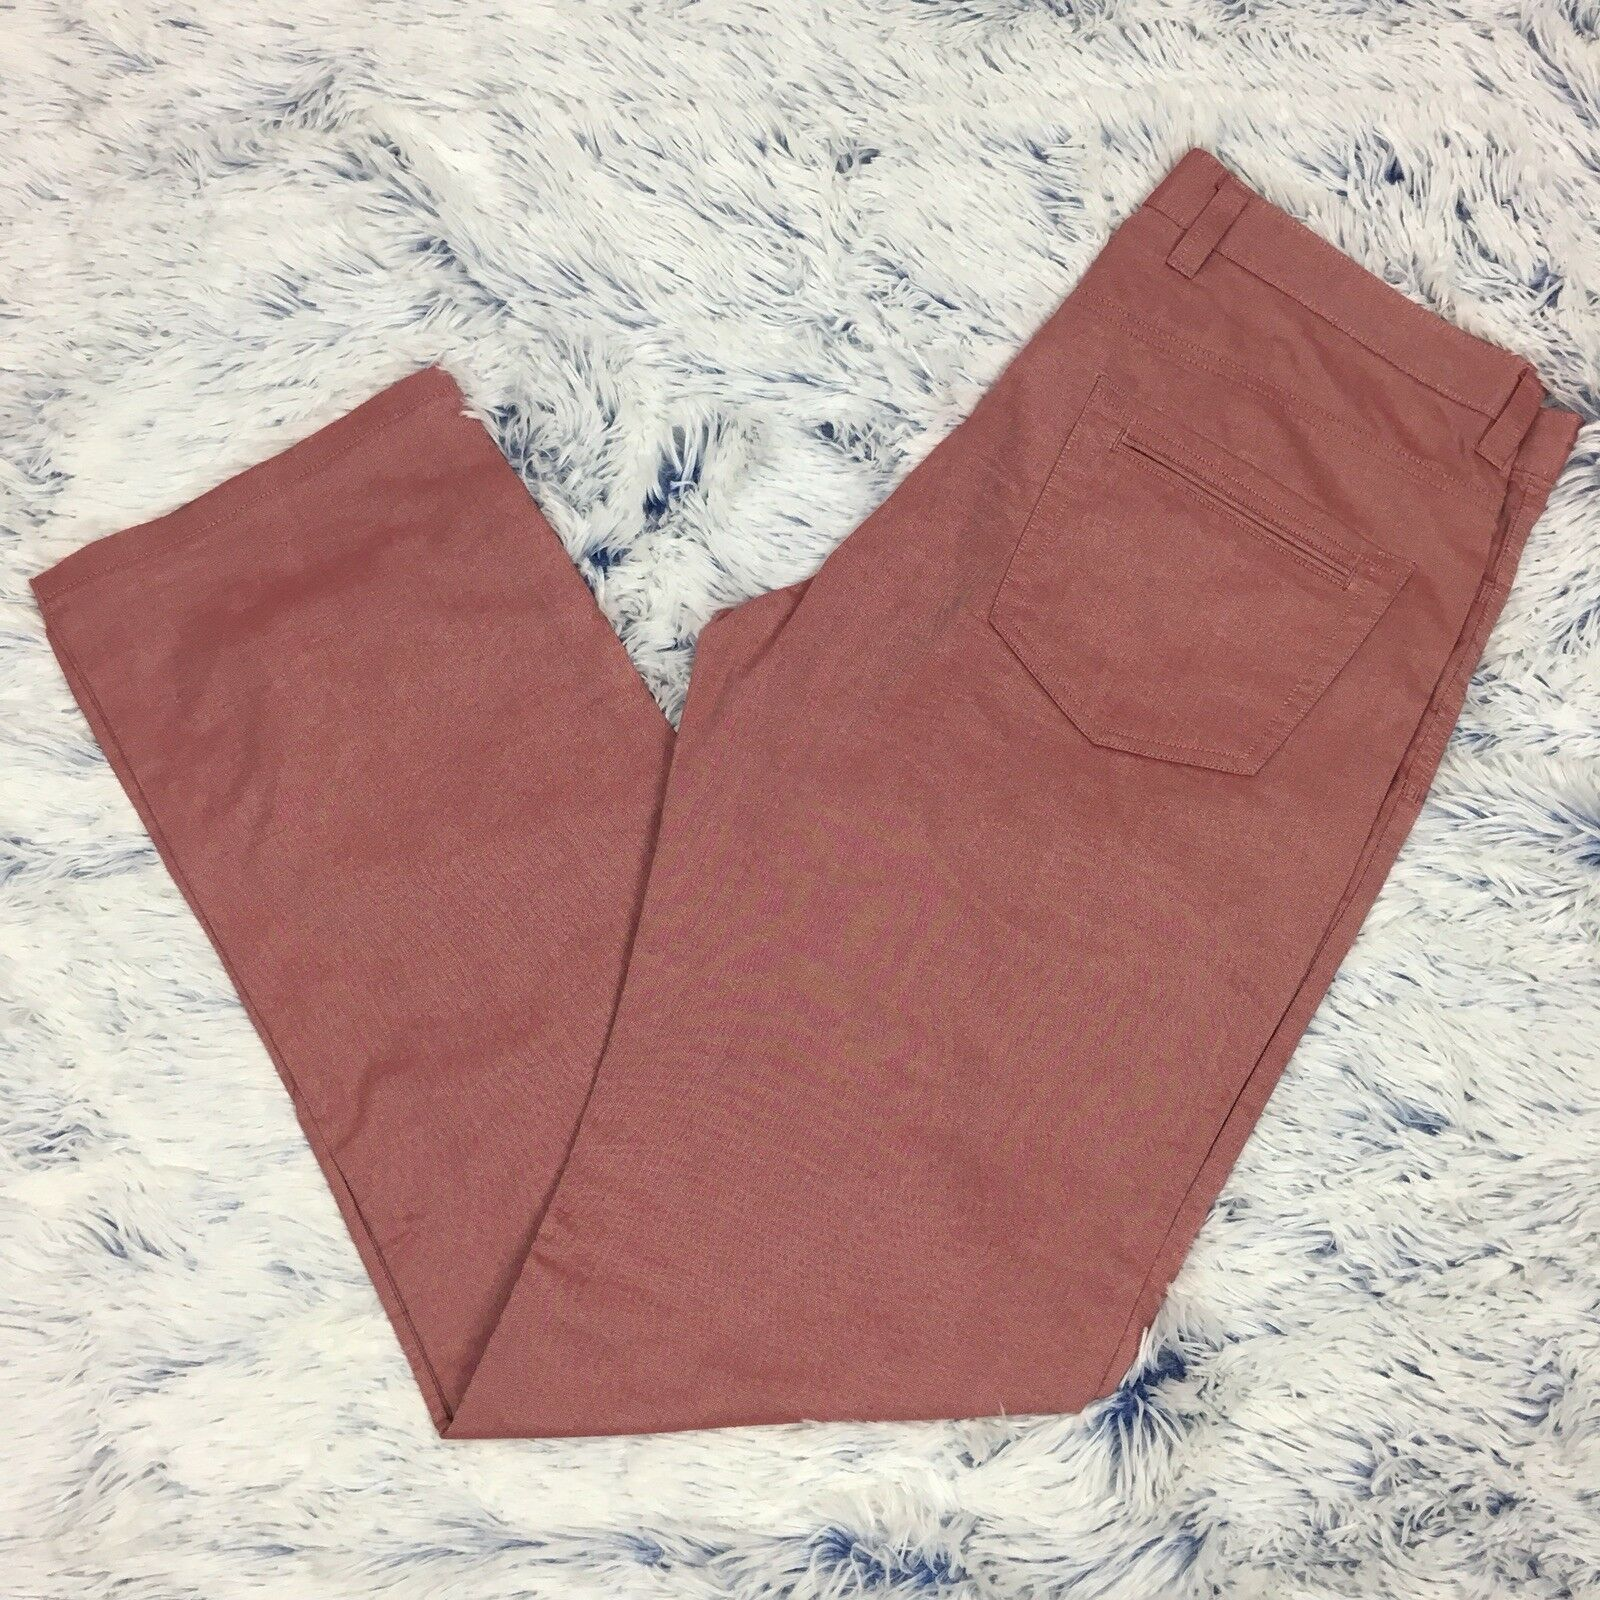 NWOT Mens blueE By Saks Fifth Avenue Pale Red Pants 36x33.5